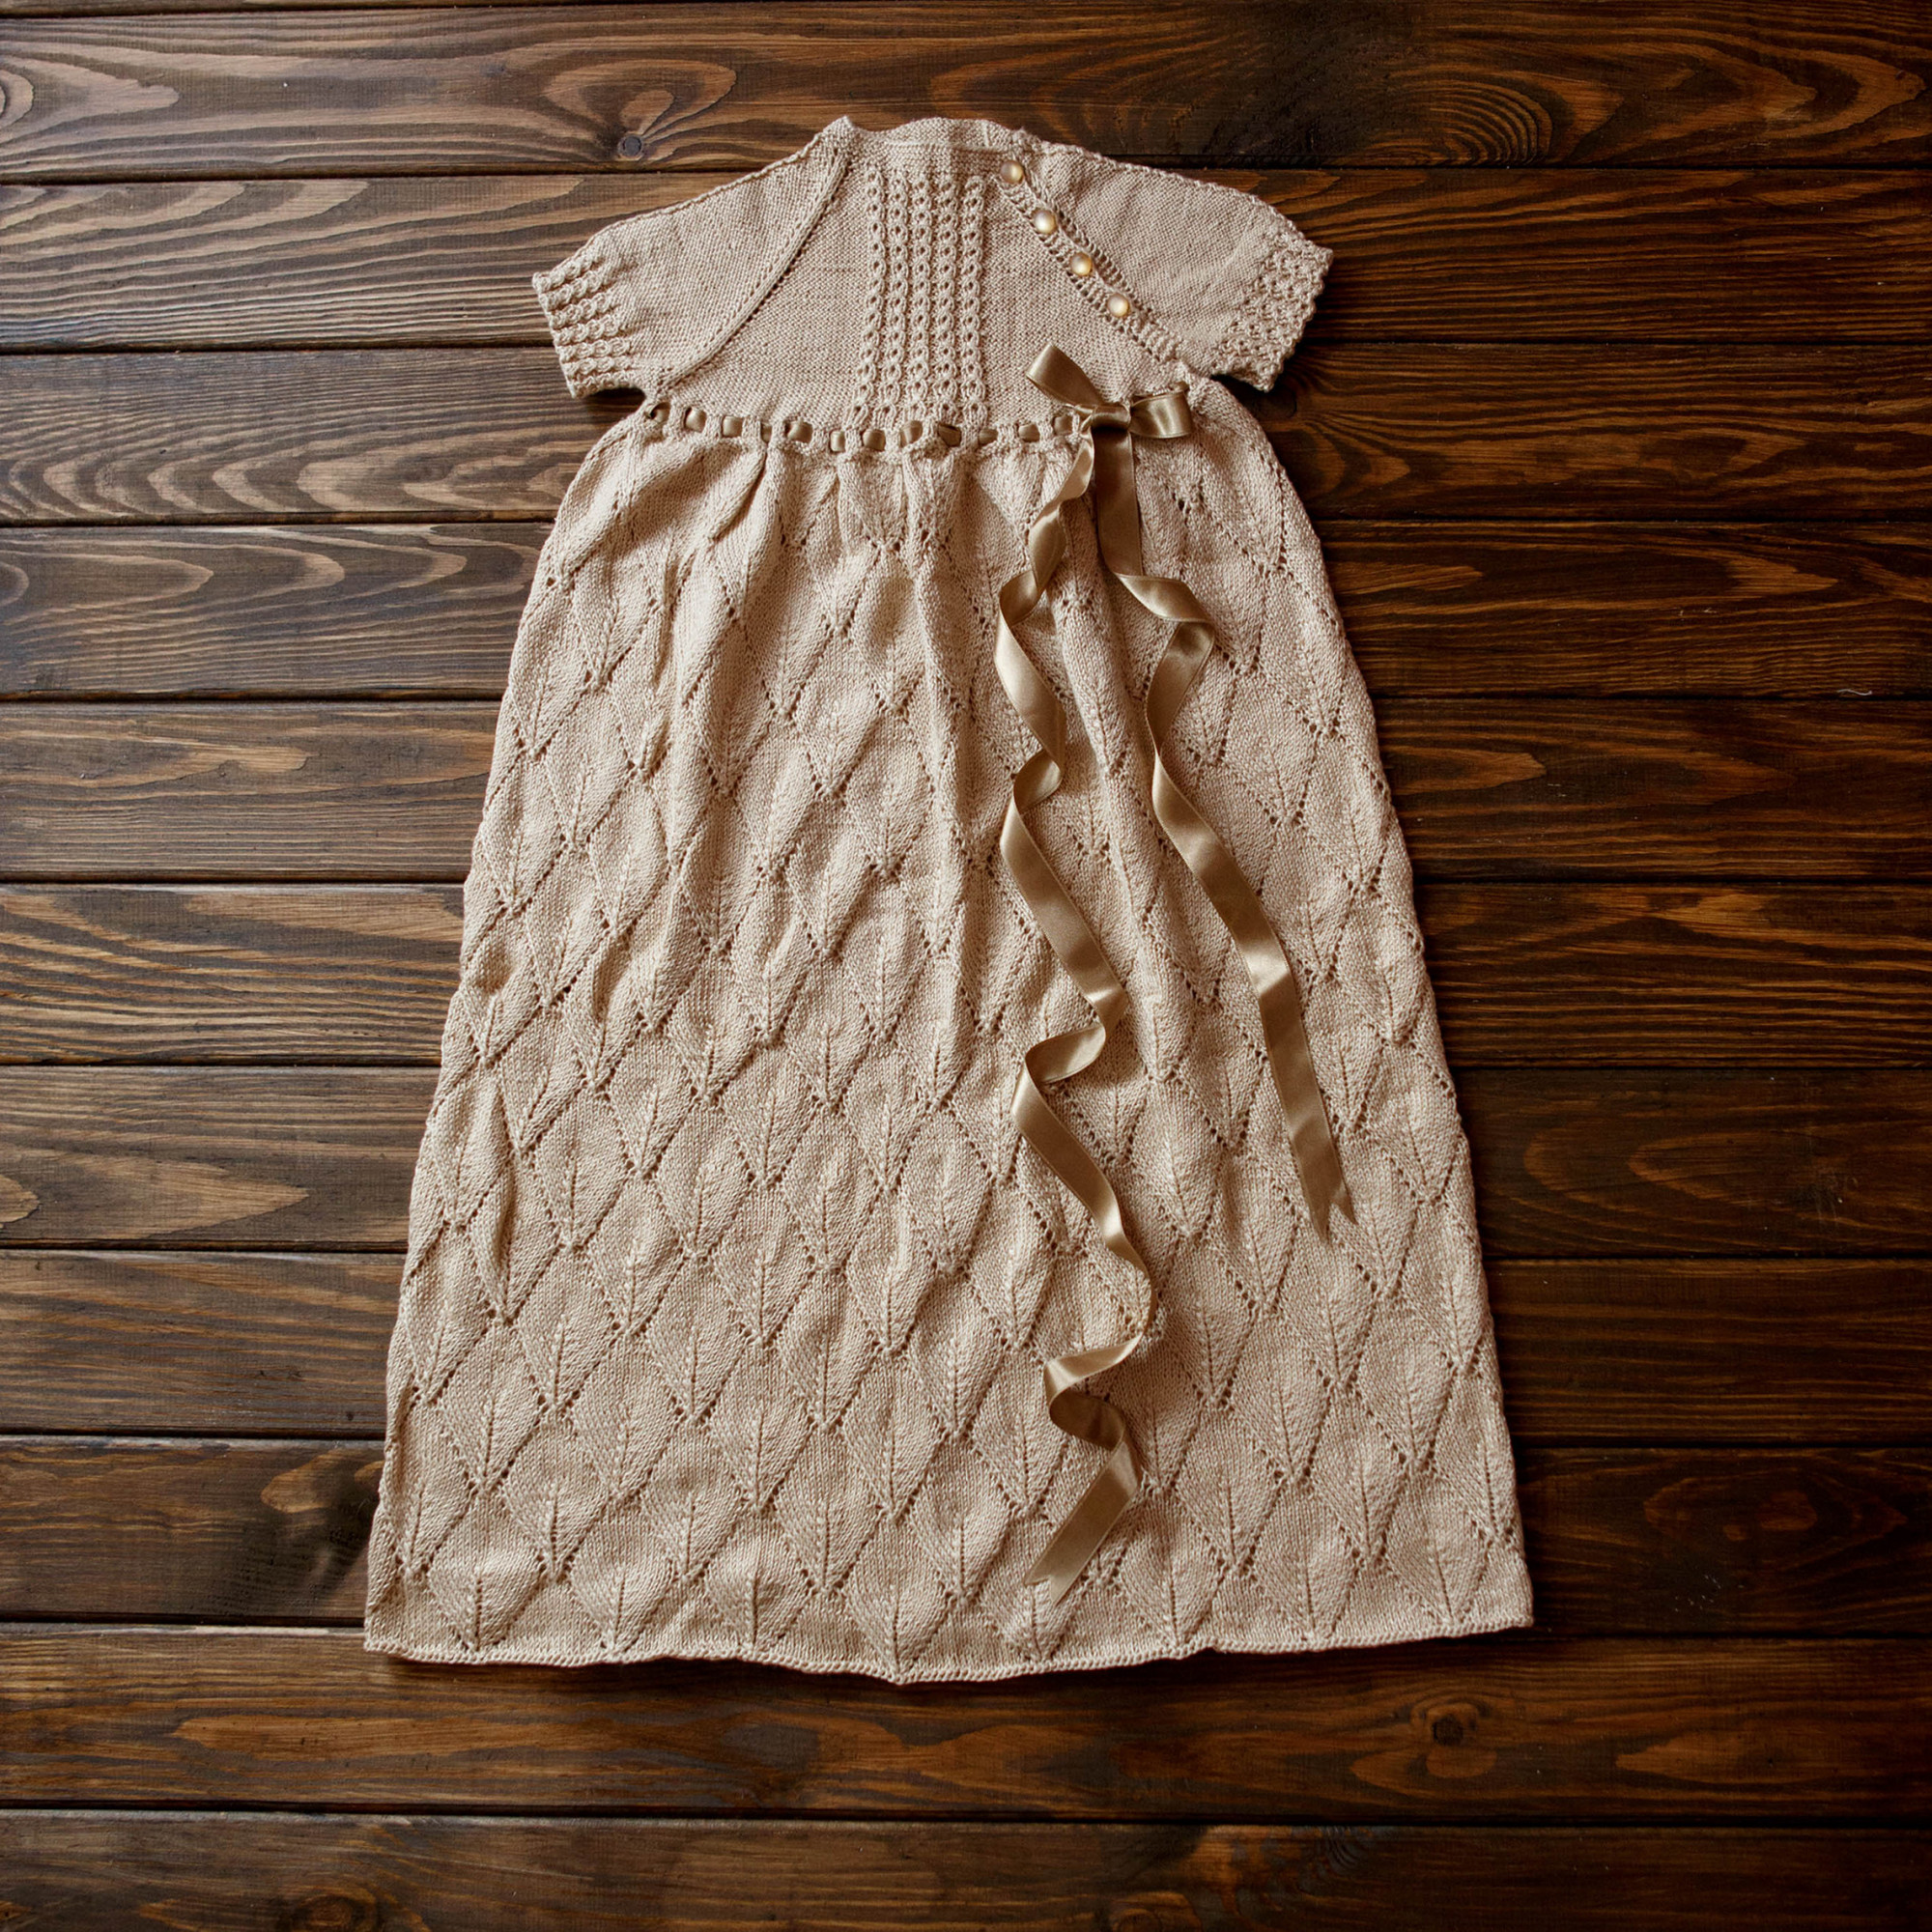 Dress with leaf-shaped pattern, a side buttoned top